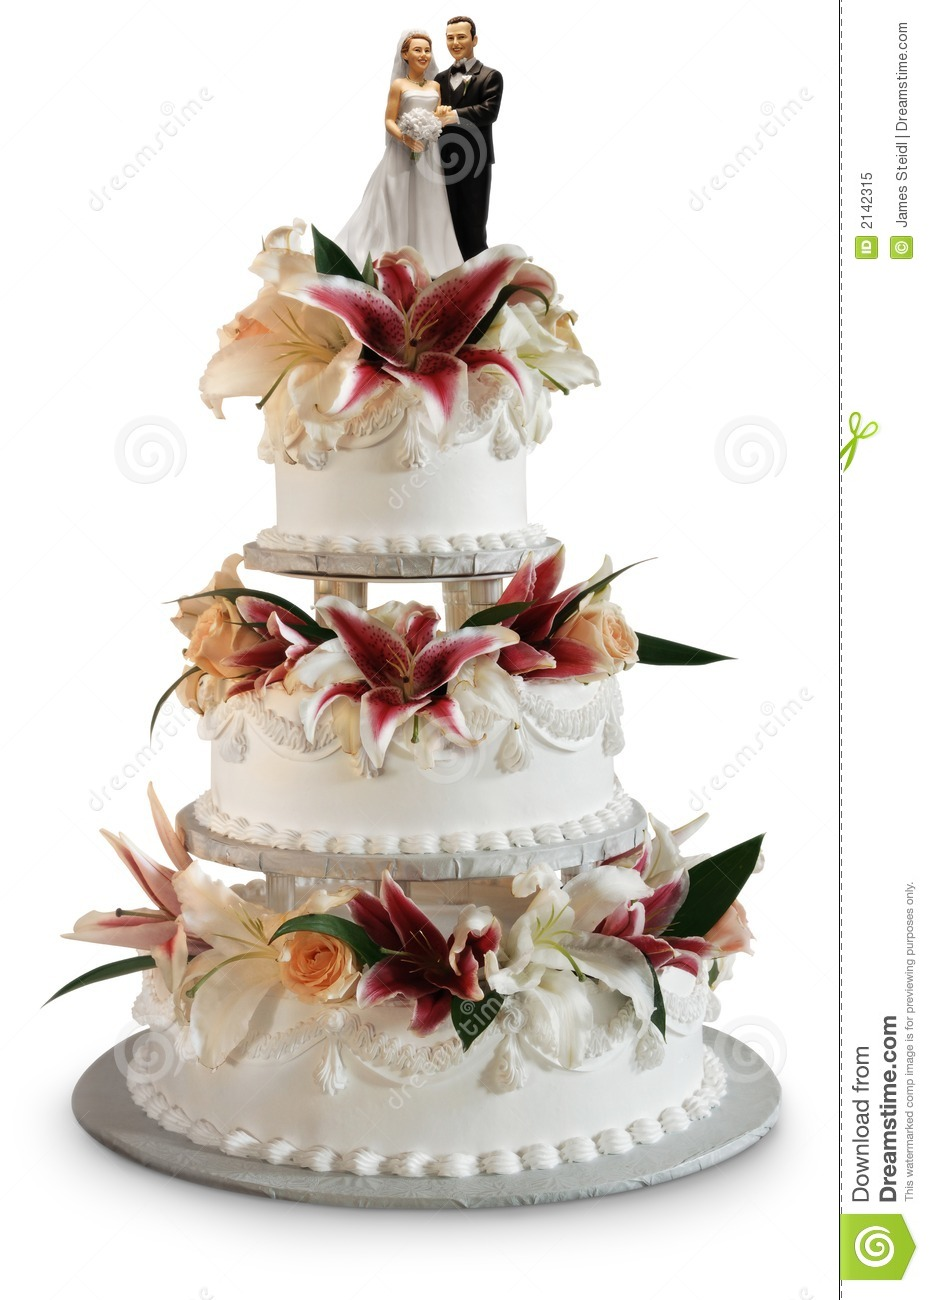 Wedding Cake Editorial